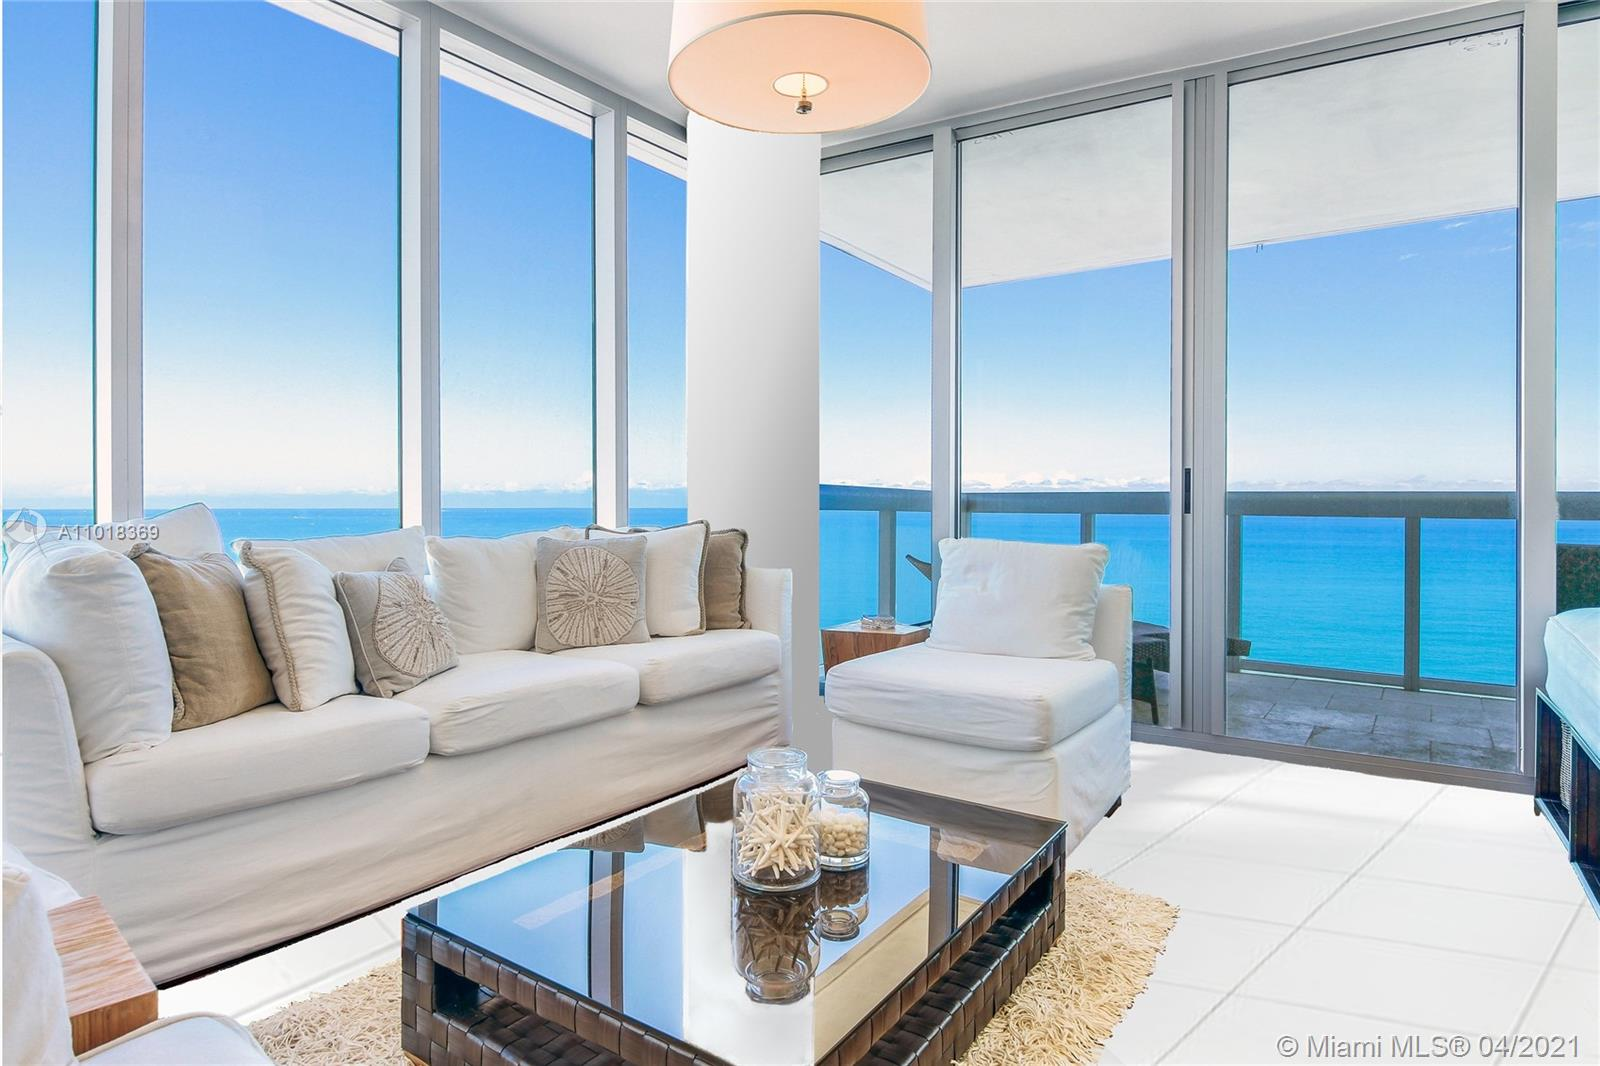 Most desirable line at Carillon in the exclusive North Tower Residences. This N.E. corner unit features floor to ceiling windows, white tile floors throughout and an expansive ultra private balcony with ocean views from every room.  Breathtaking, unfurnished 2 bedroom / 2 bathroom beach house will not last! Carillon lifestyle is unsurpassed, residency includes (8 person) access to Carillon Resort's exclusive services + amenities which has been voted as a #1 Resort in Florida. Five star amenities w/ 4 gorgeous pools, private beach service/attendants, salon, indoor rock climbing, & a 70,000-sqft spa & wellness facility offering 100+ classes/week in yoga, Zumba, spin, etc., Organic Restaurant & café onsite. Please note, some decorative features may differ slightly from the pictures.